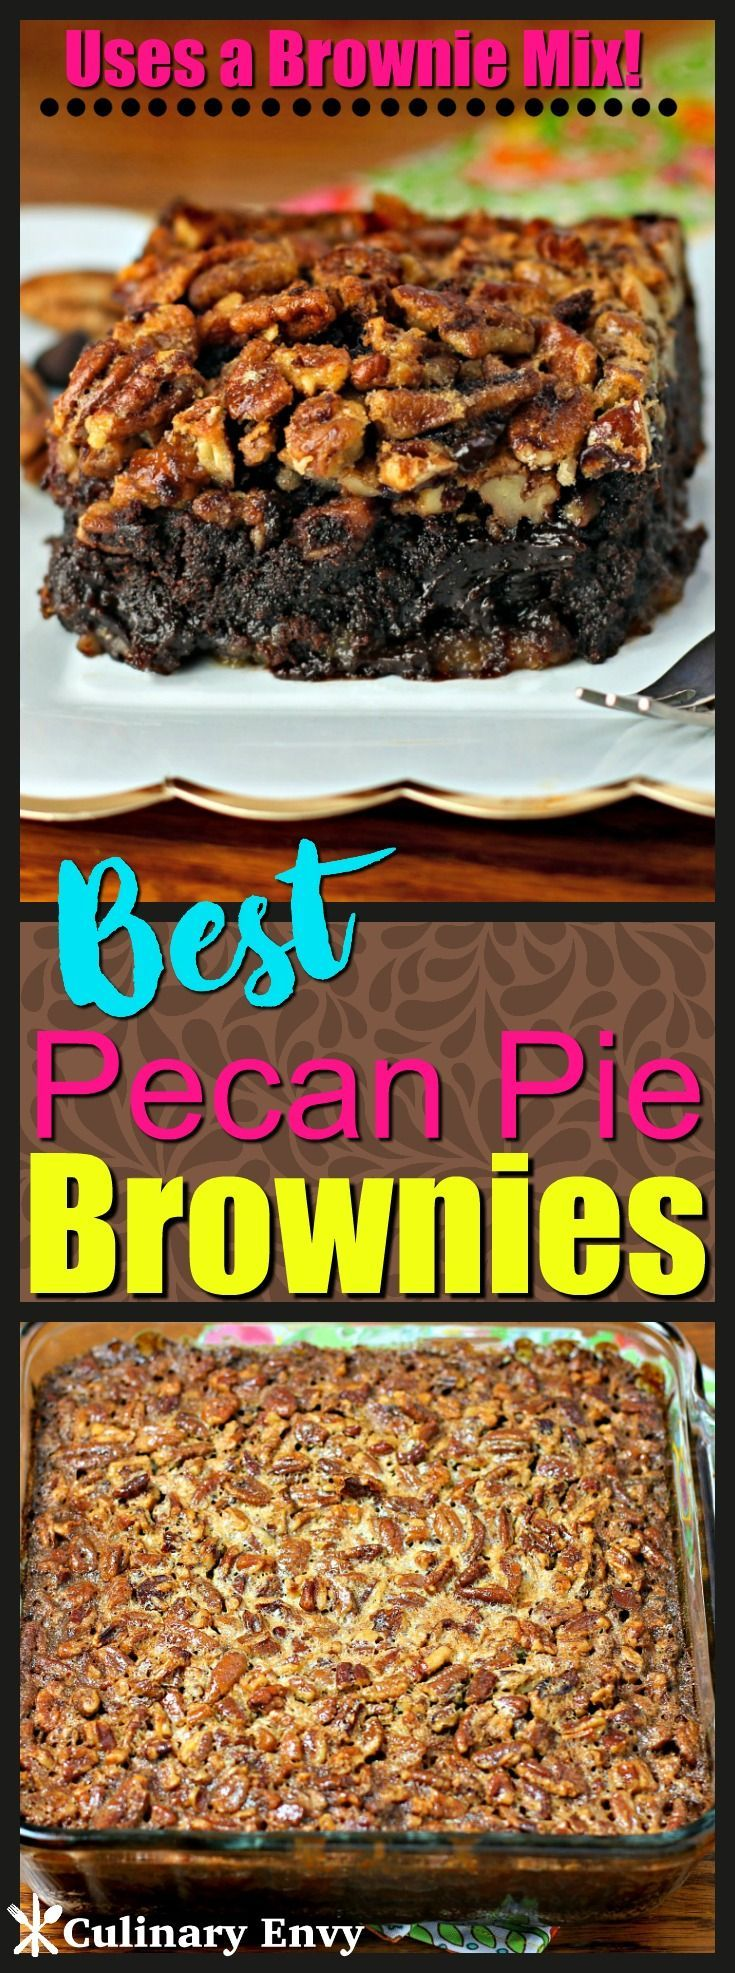 These Best Pecan Pie Brownies are fudgy brownies topped with a crunchy, nutty, buttery brown sugar pecan pie topping that create the perfect gooey dessert. Click to read more! #dessertfoodrecipes